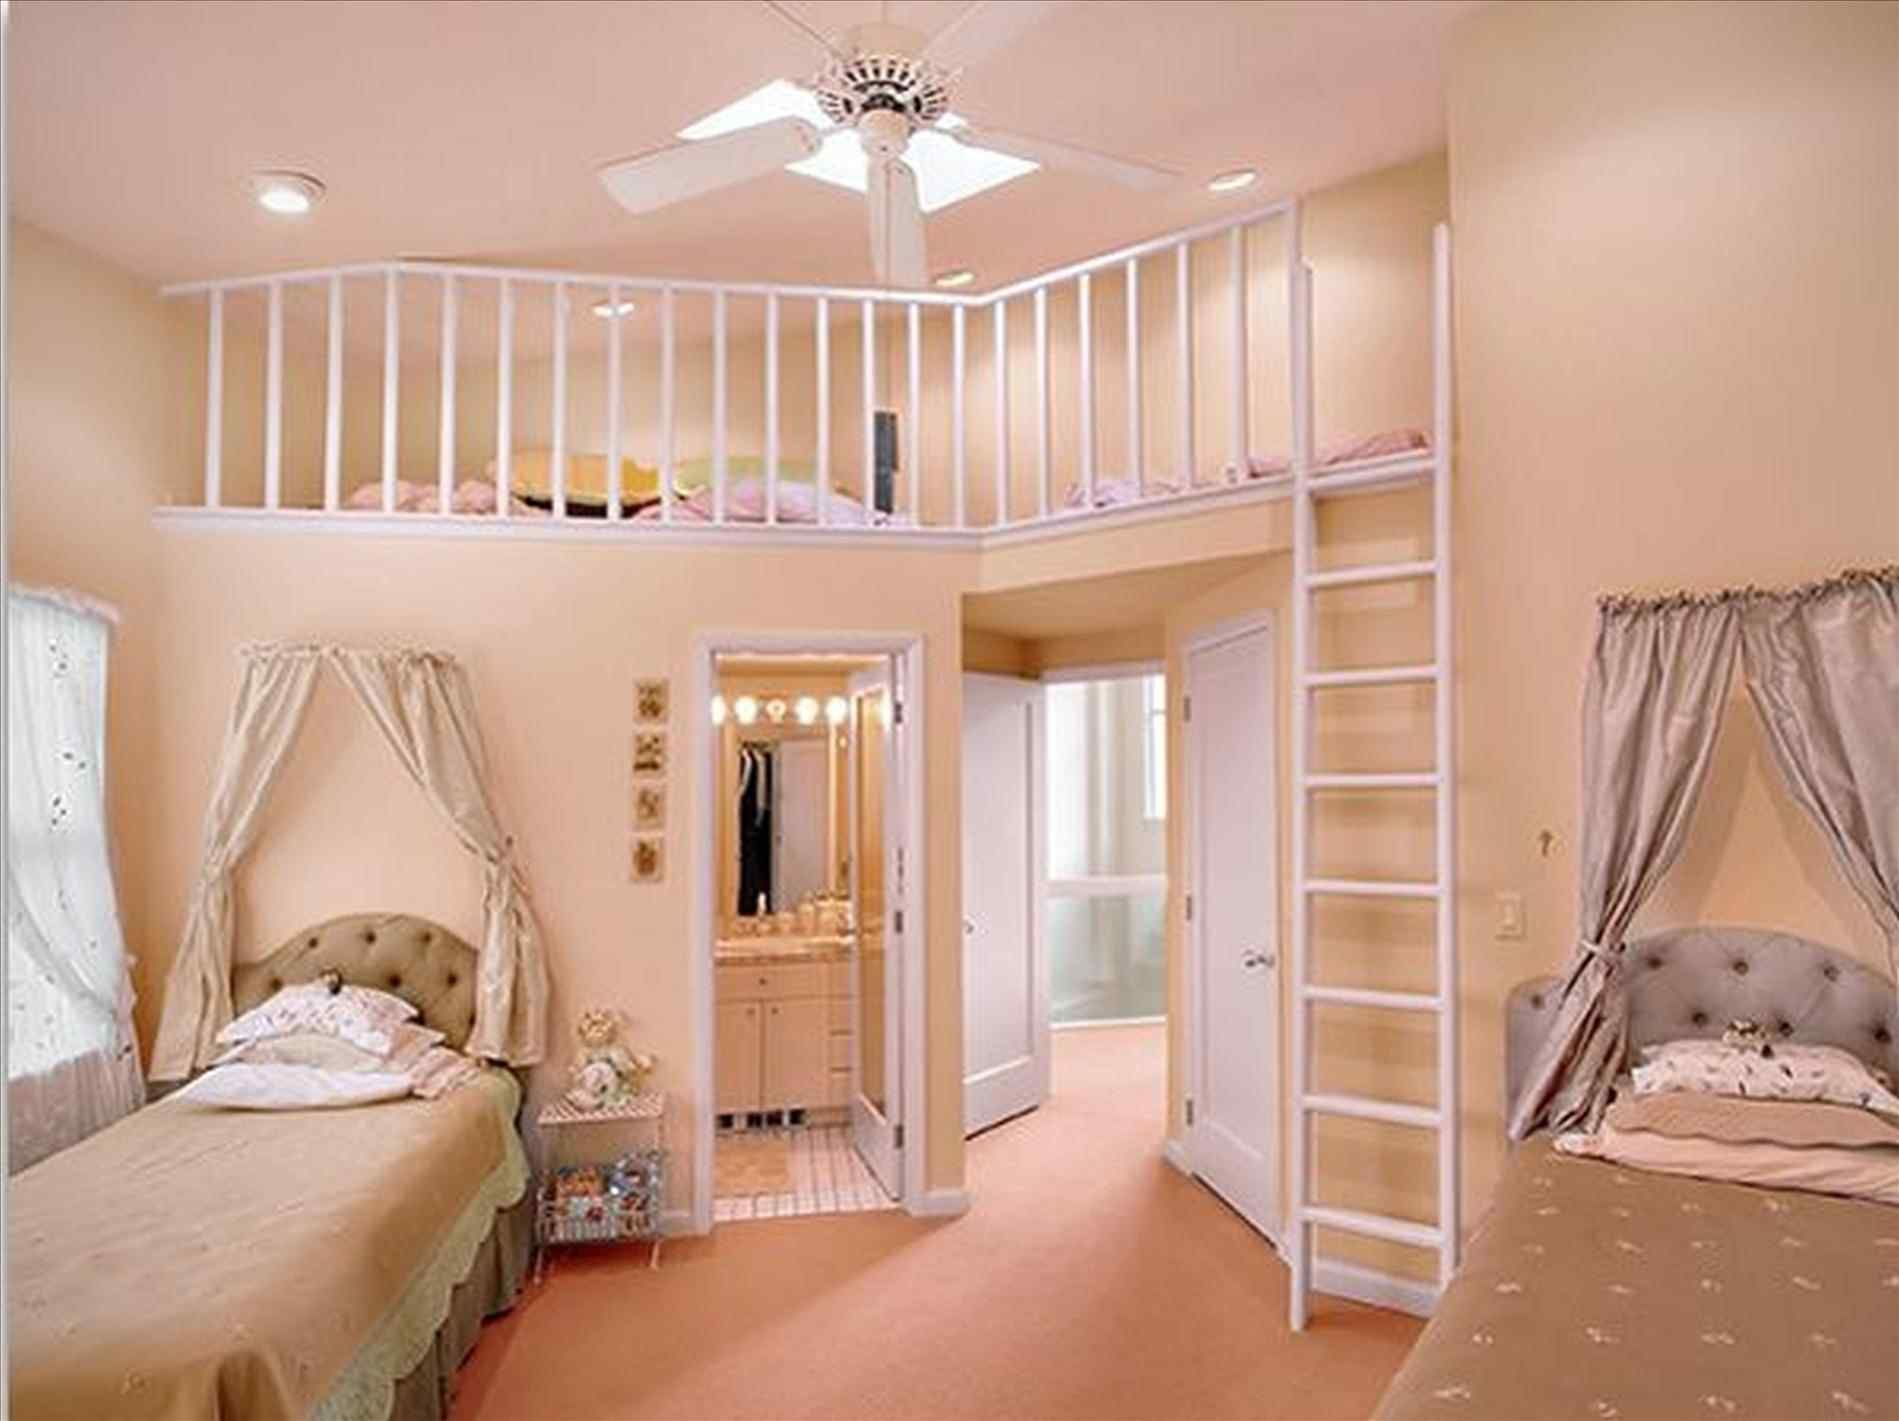 3 Bunk Bed Ideas Kids Room Alluring Bed Ideas Showing Brown Wooden